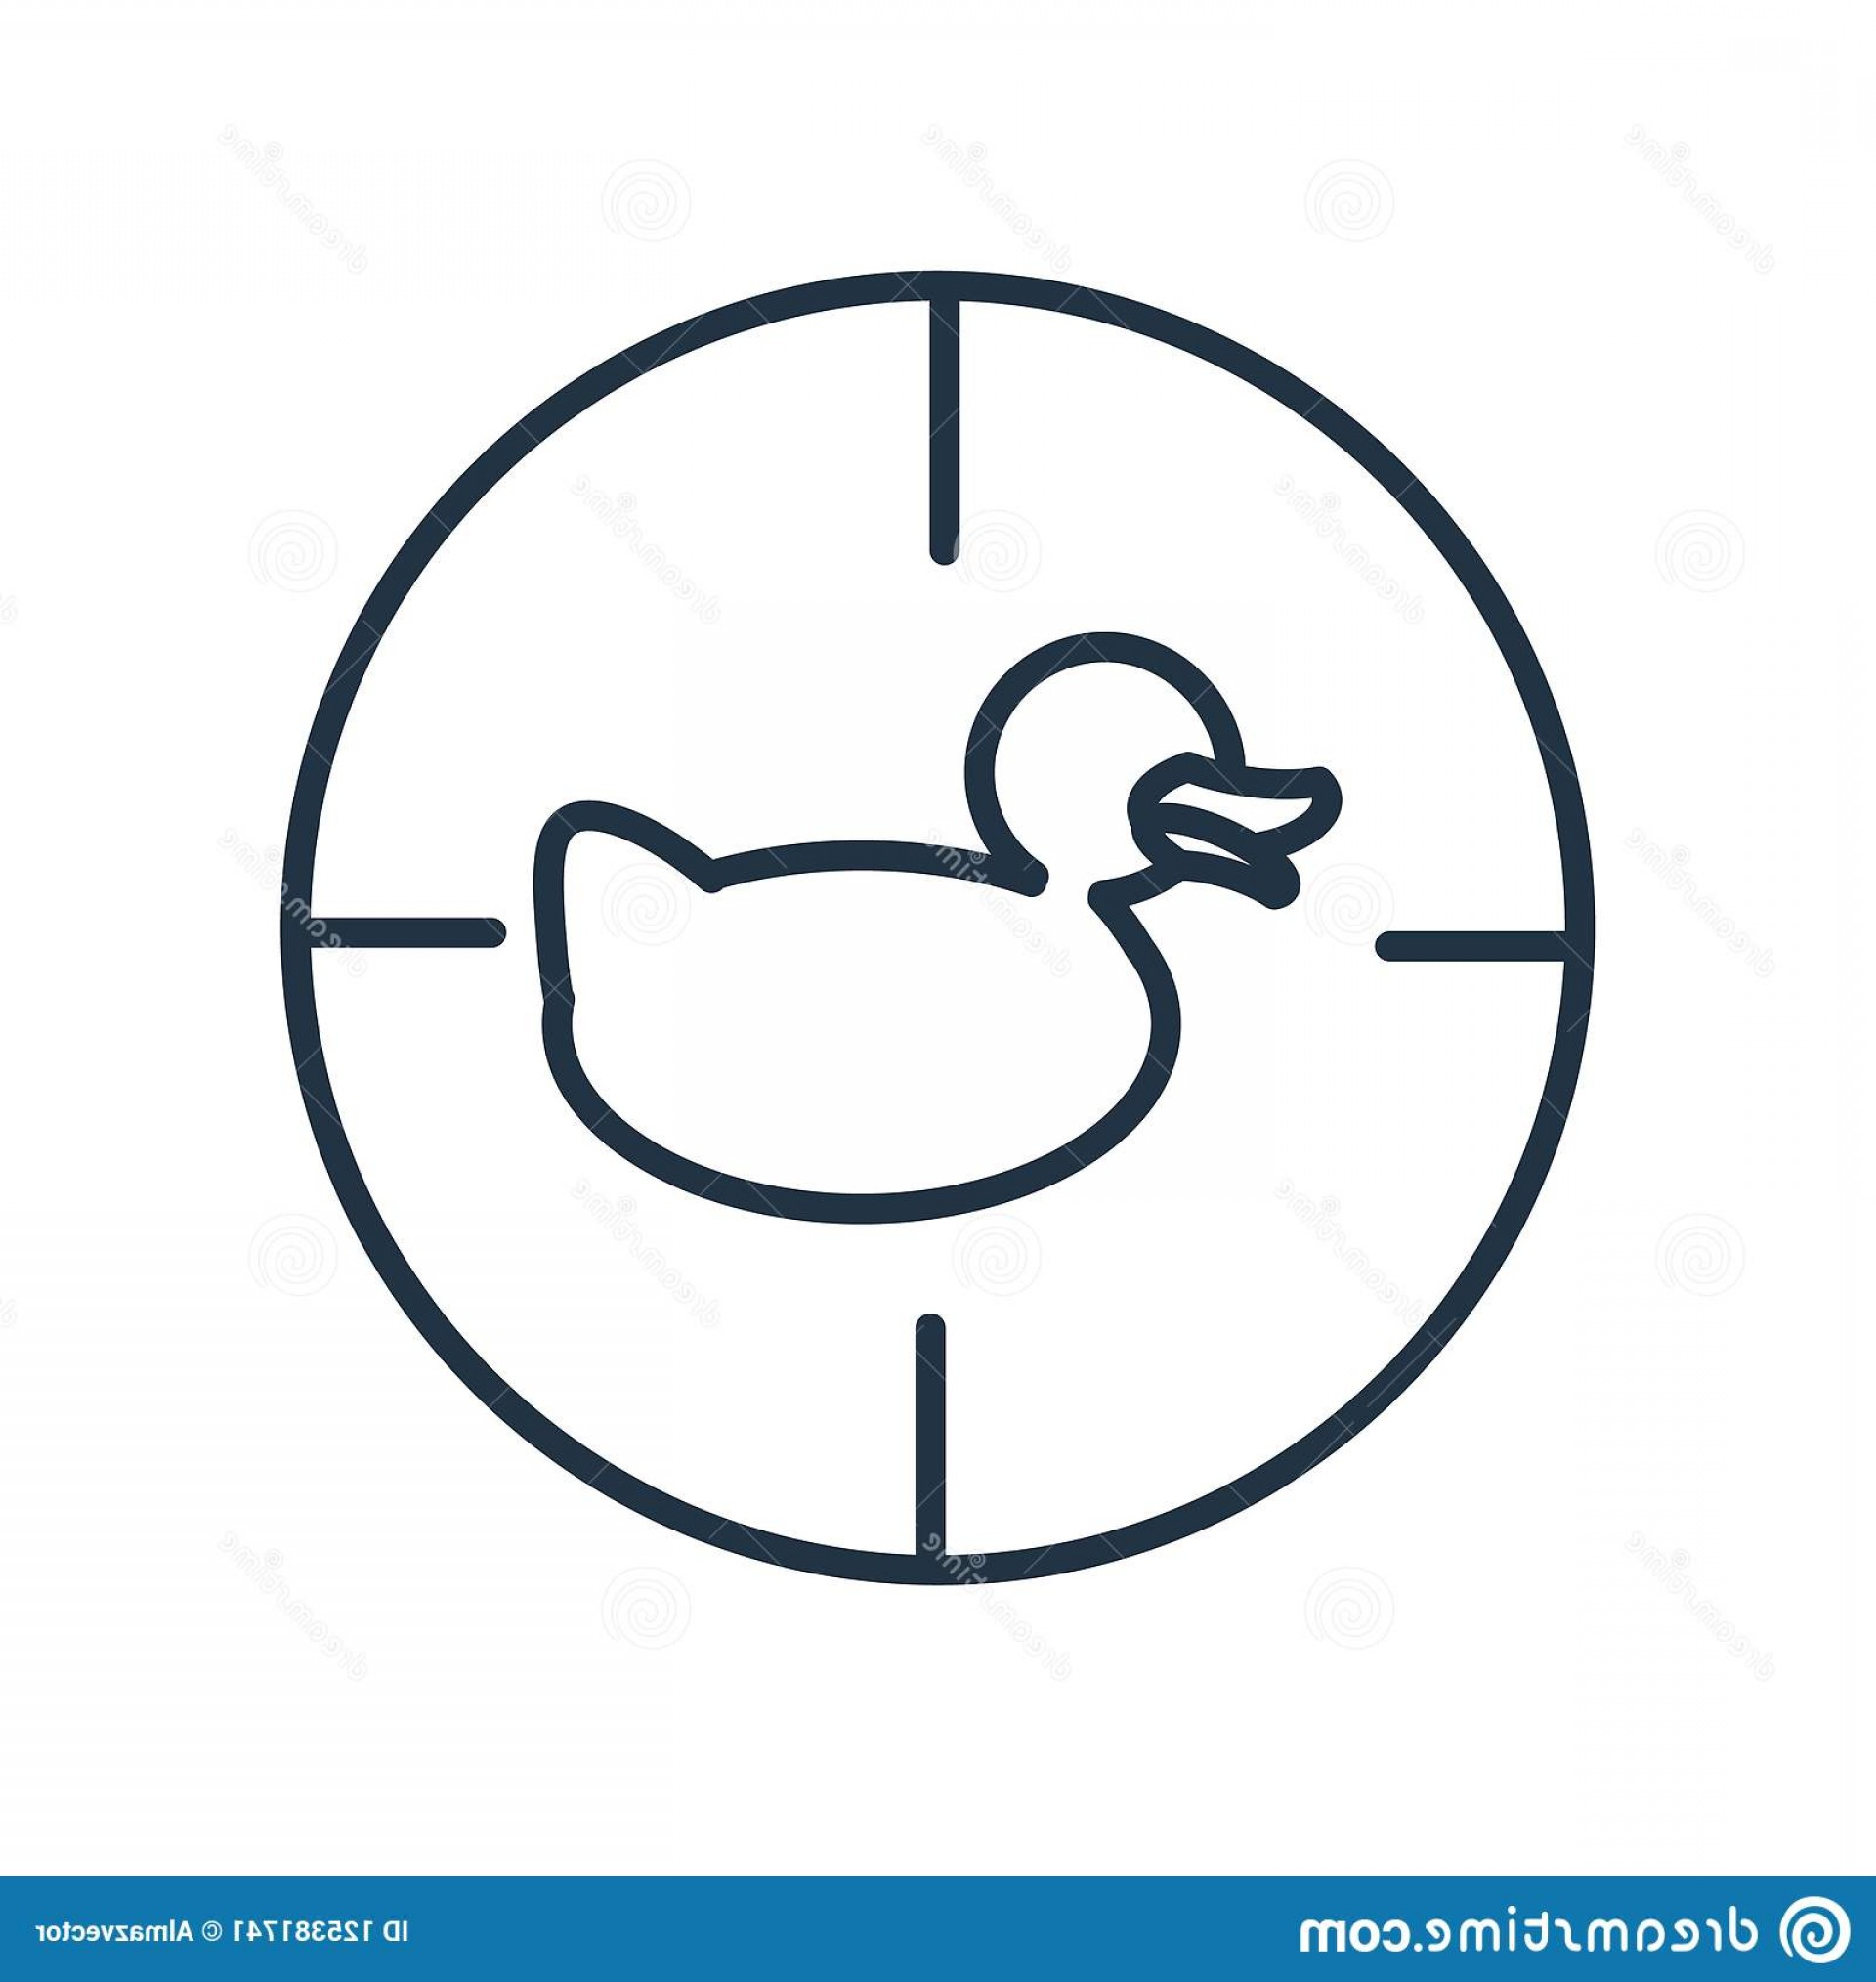 Shot Duck Outline Vector: Shoot Duck Icon Vector Isolated White Background Shoot Duck Shoot Duck Icon Vector Isolated White Background Shoot Duck Image